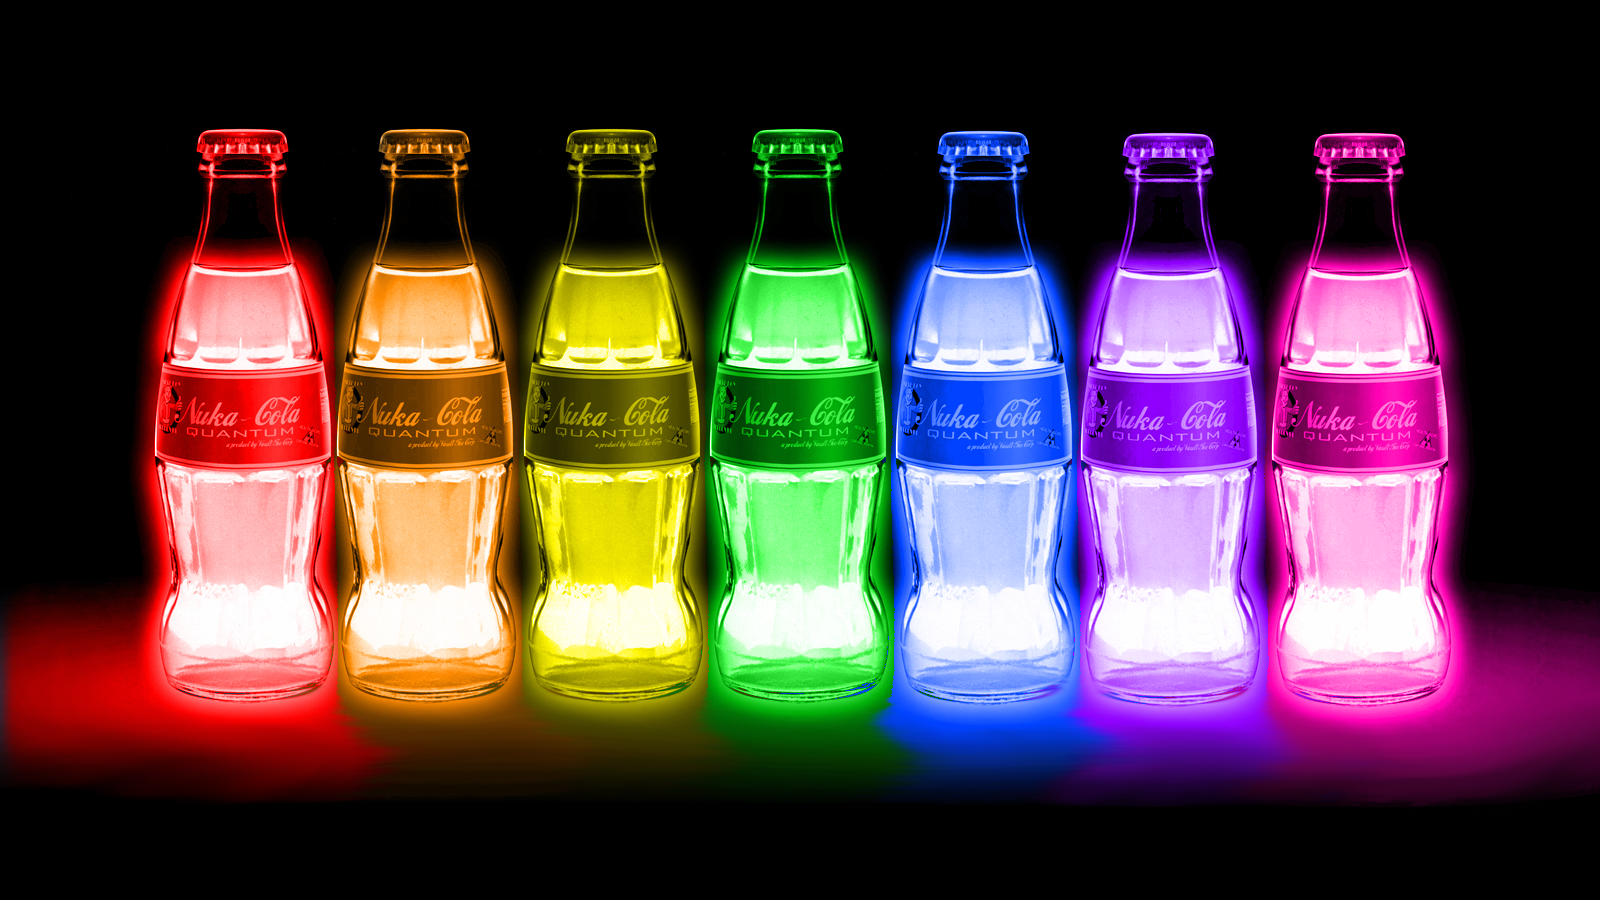 FALLOUT drink nuclear radiation color glow neon wallpaper background 1600x900